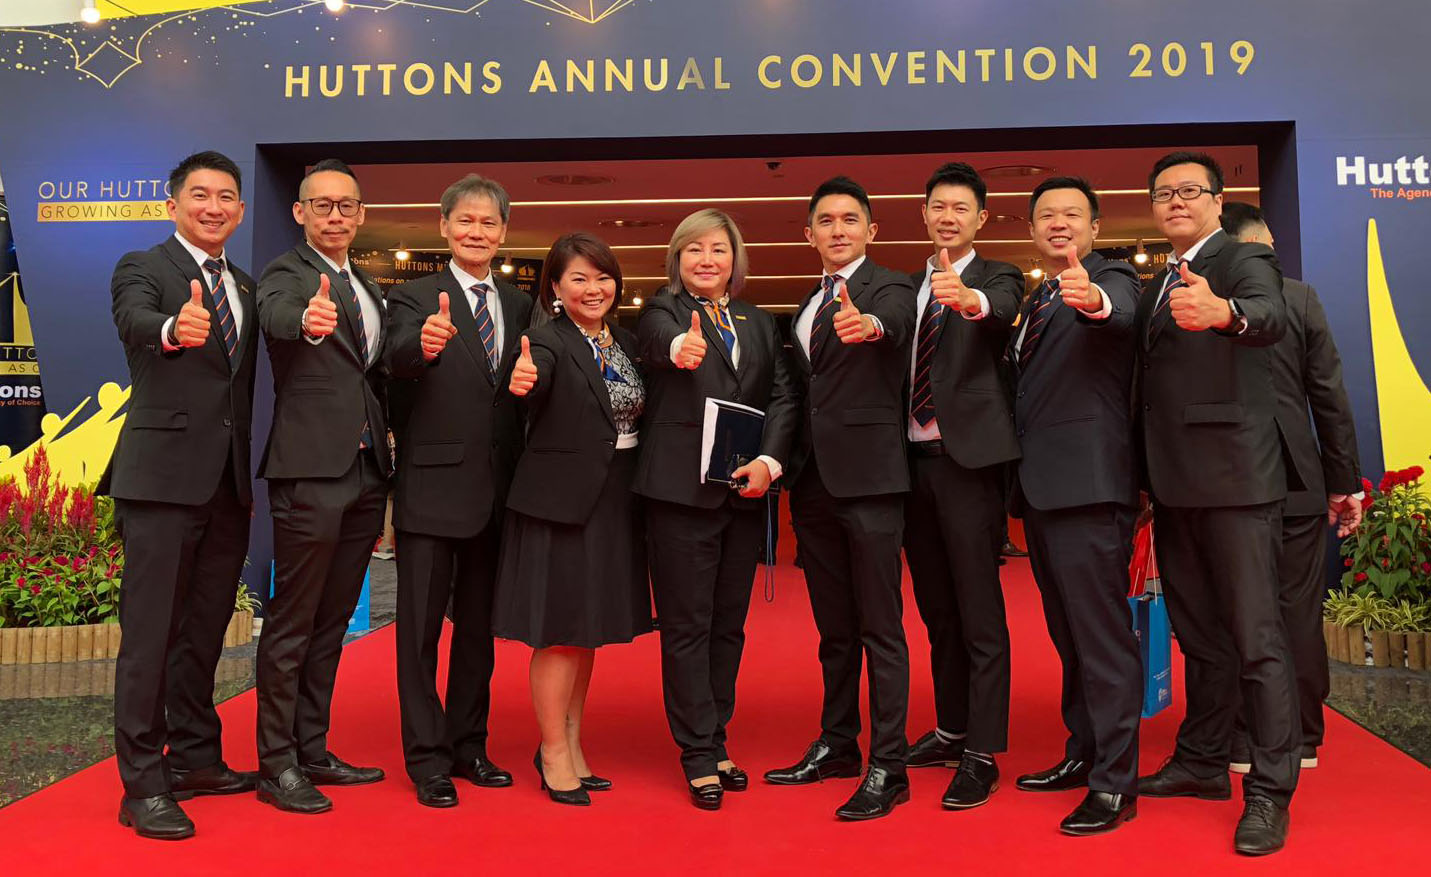 Huttons Annual Convention 2019